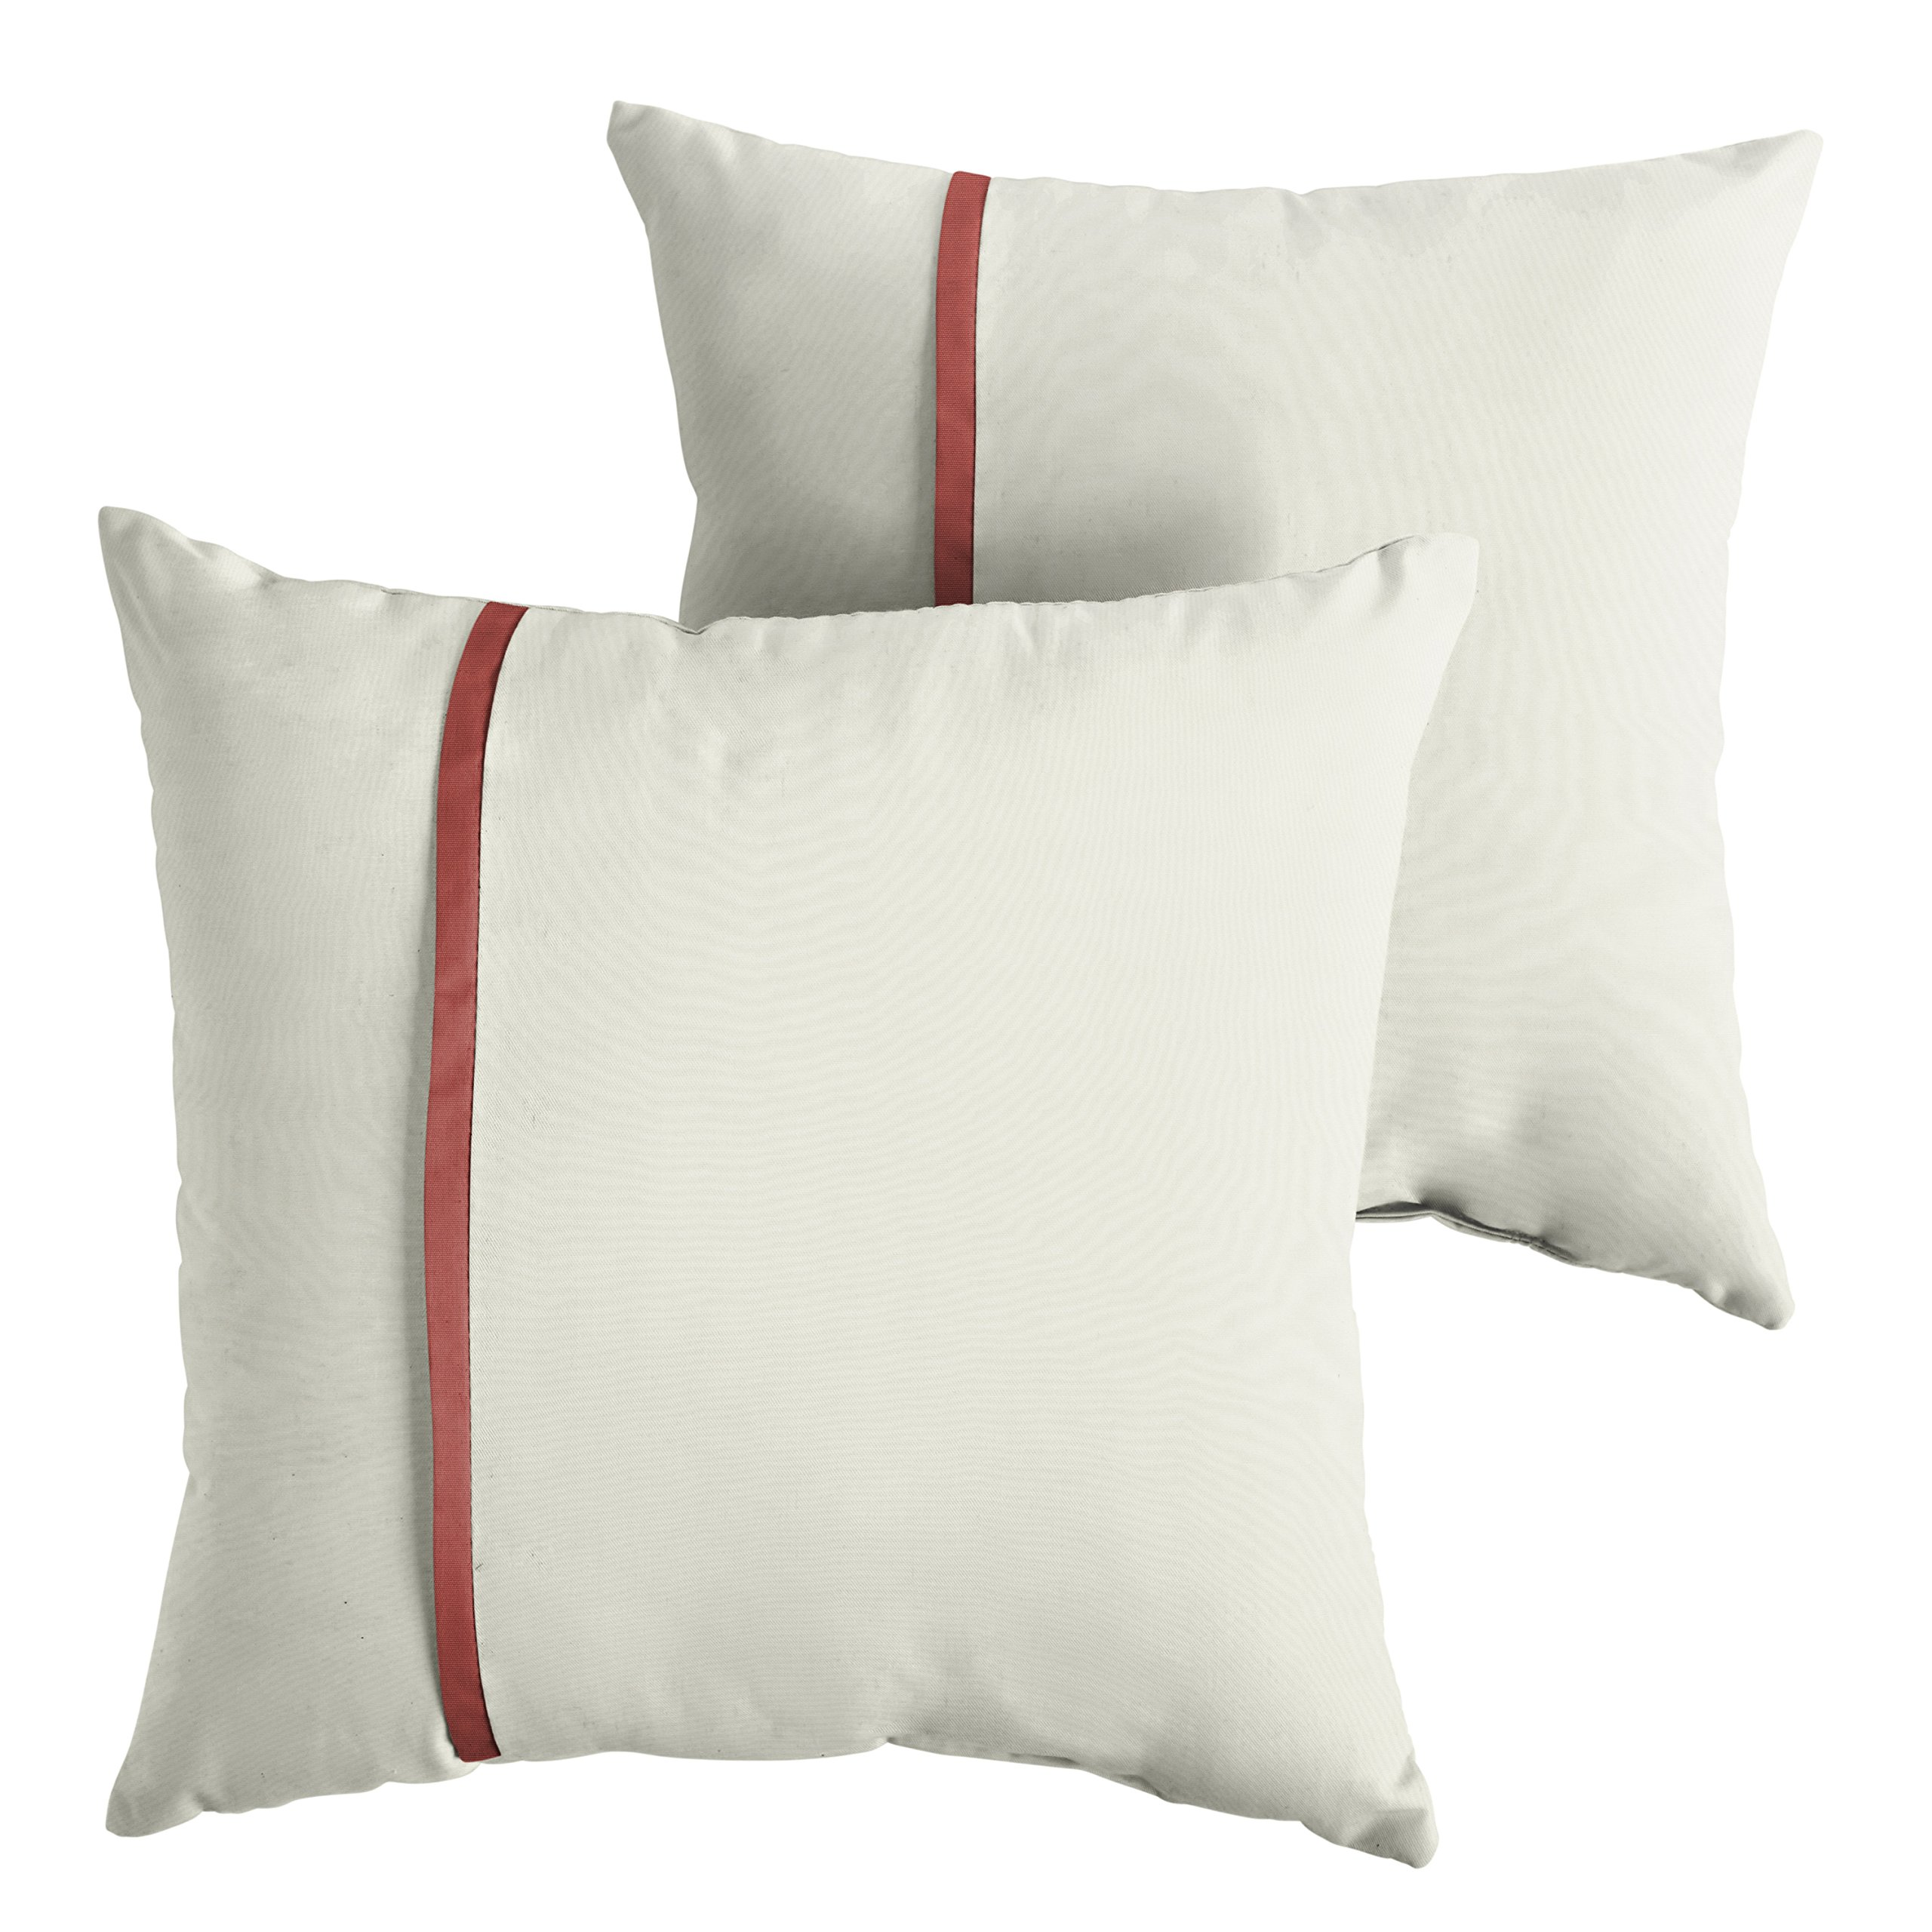 Mozaic Company AMPS112179 Indoor Outdoor Sunbrella Square Pillows, Set of 2, 20x20, Canvas Natural Ivory & Henna Red